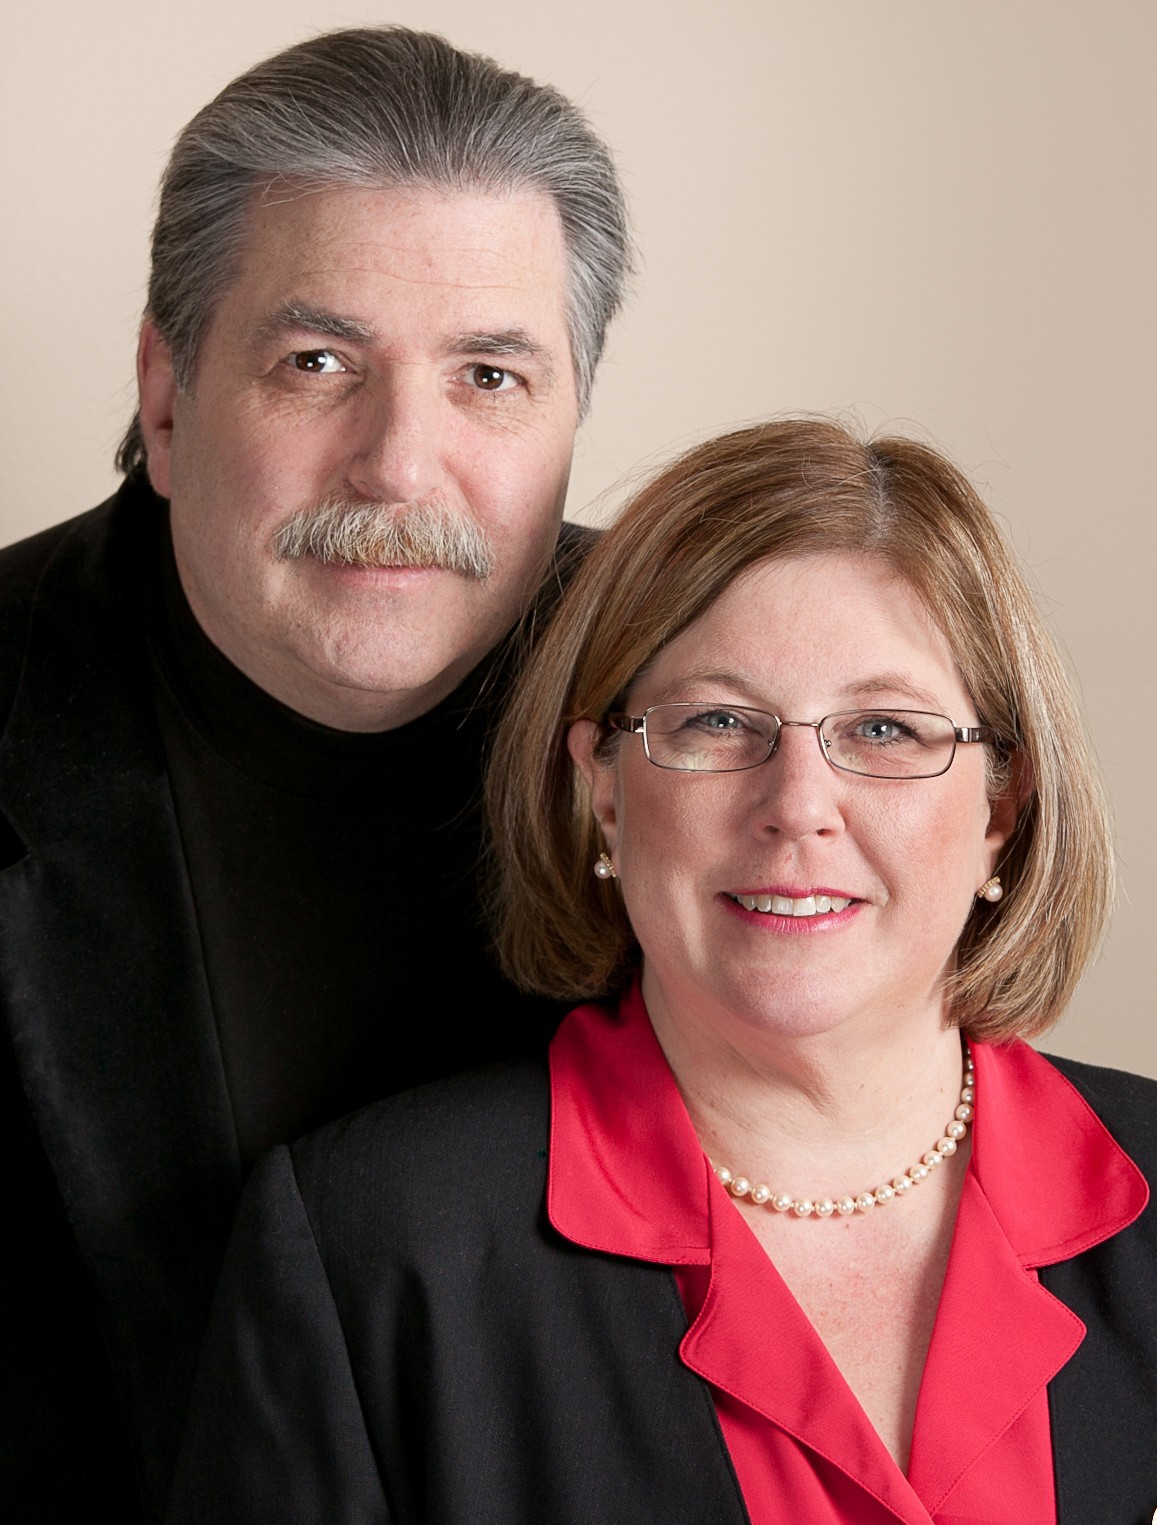 Bob and Richelle Ward, Realtors, Newtown, CT